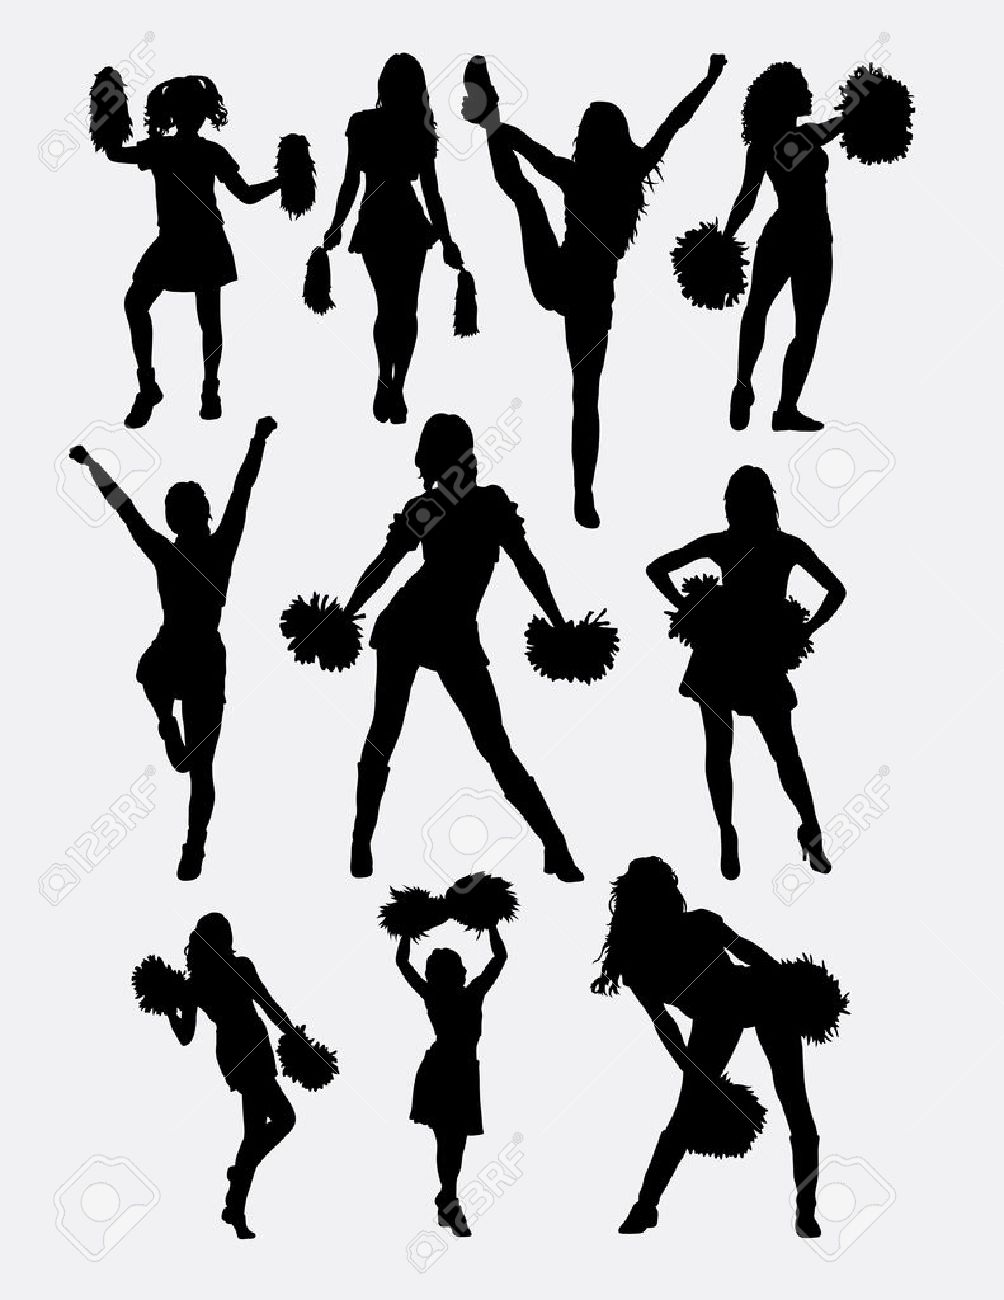 hight resolution of girl cheerleader pose silhouette good use for symbol logo web icon character